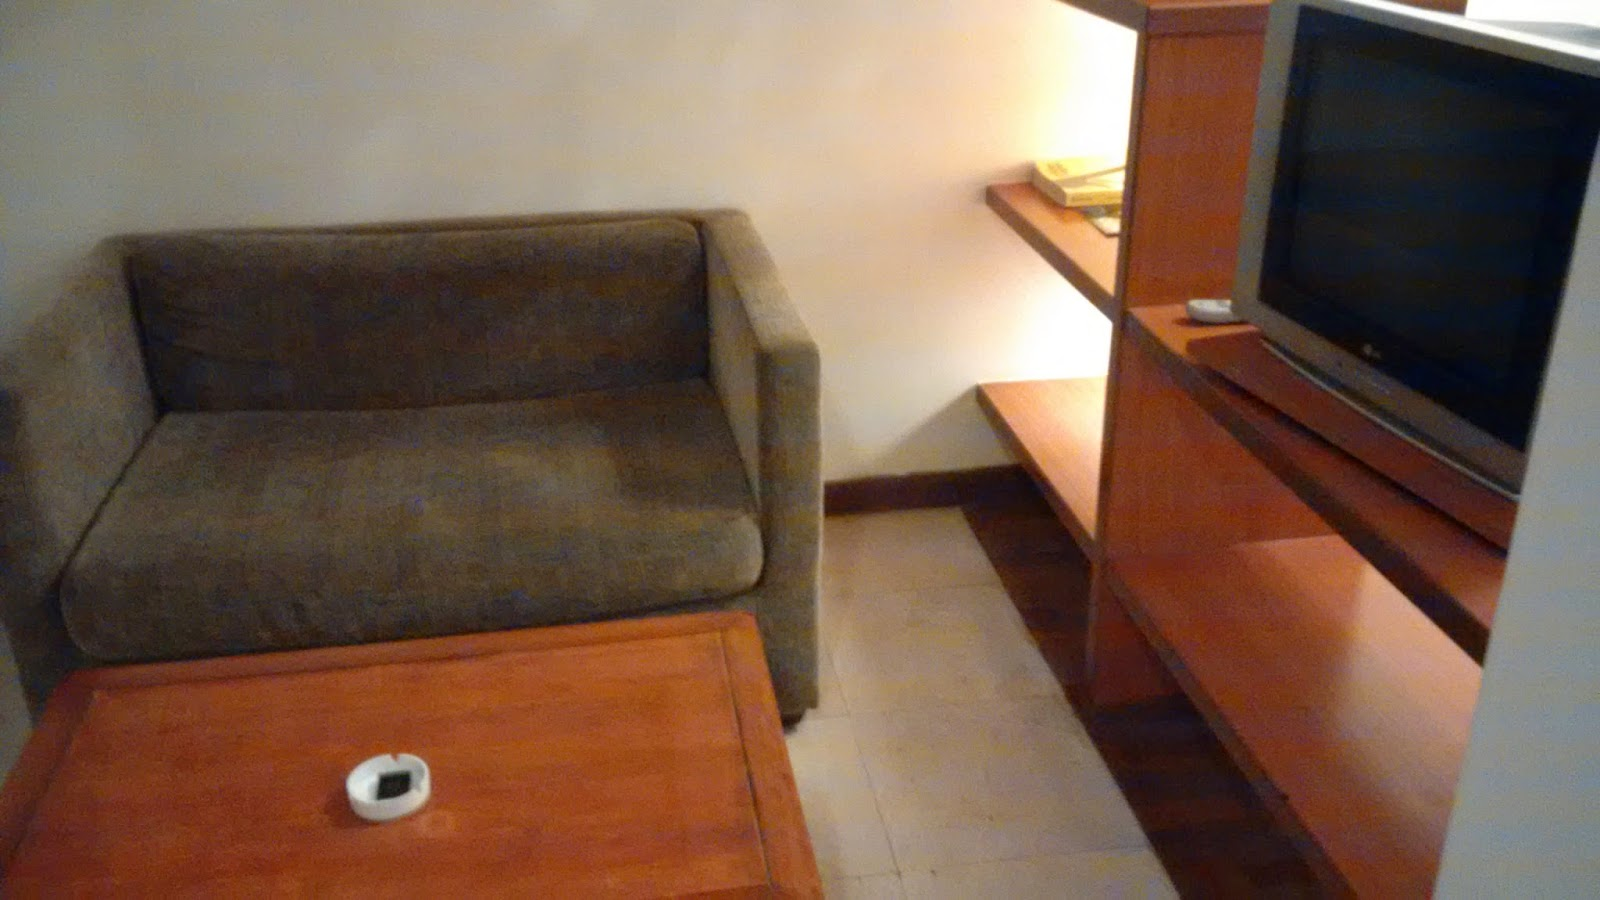 hotel suites kl, peninsula residence all suite hotel, peninsula damansara, hotel damansara, breakfast included damansara,